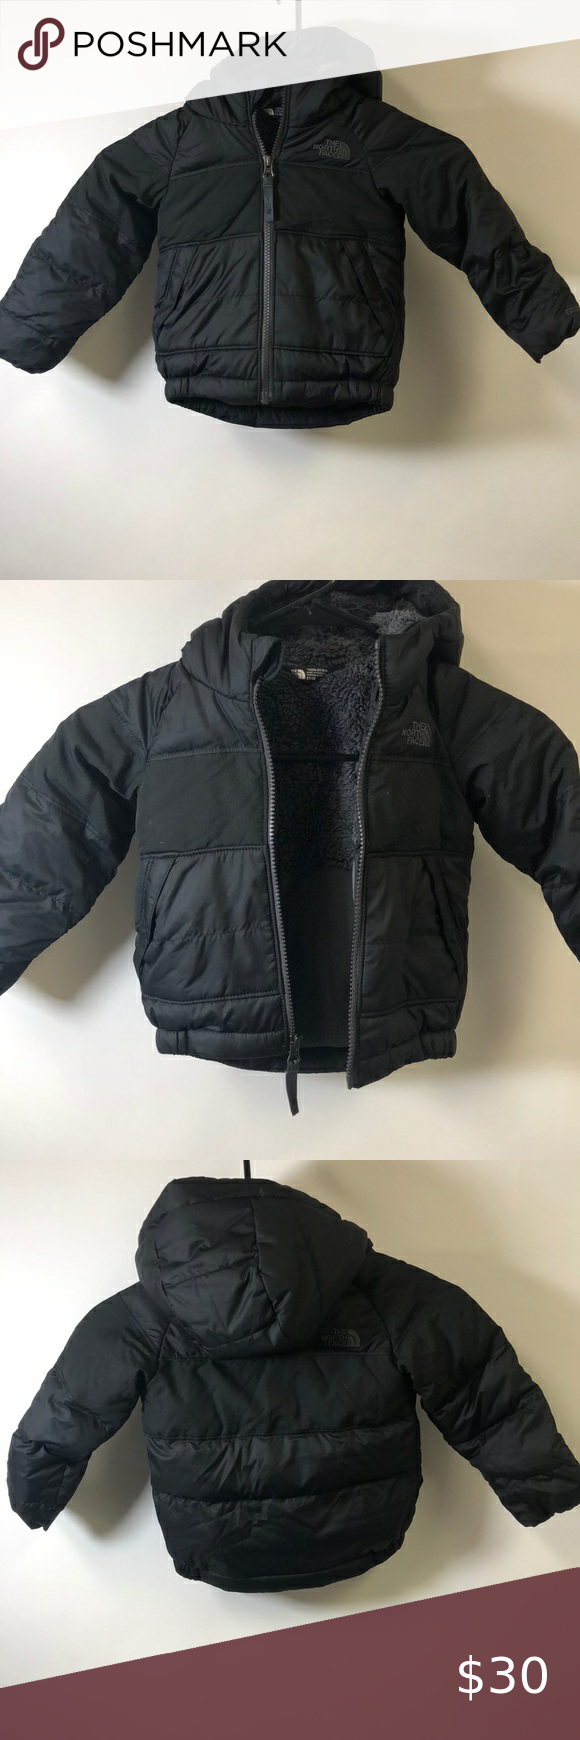 The North Face Puffer Jacket Toddler Sz 2t 2b J229 North Face Puffer Jacket The North Face Puffer Jacket North Face Puffer [ 1740 x 580 Pixel ]